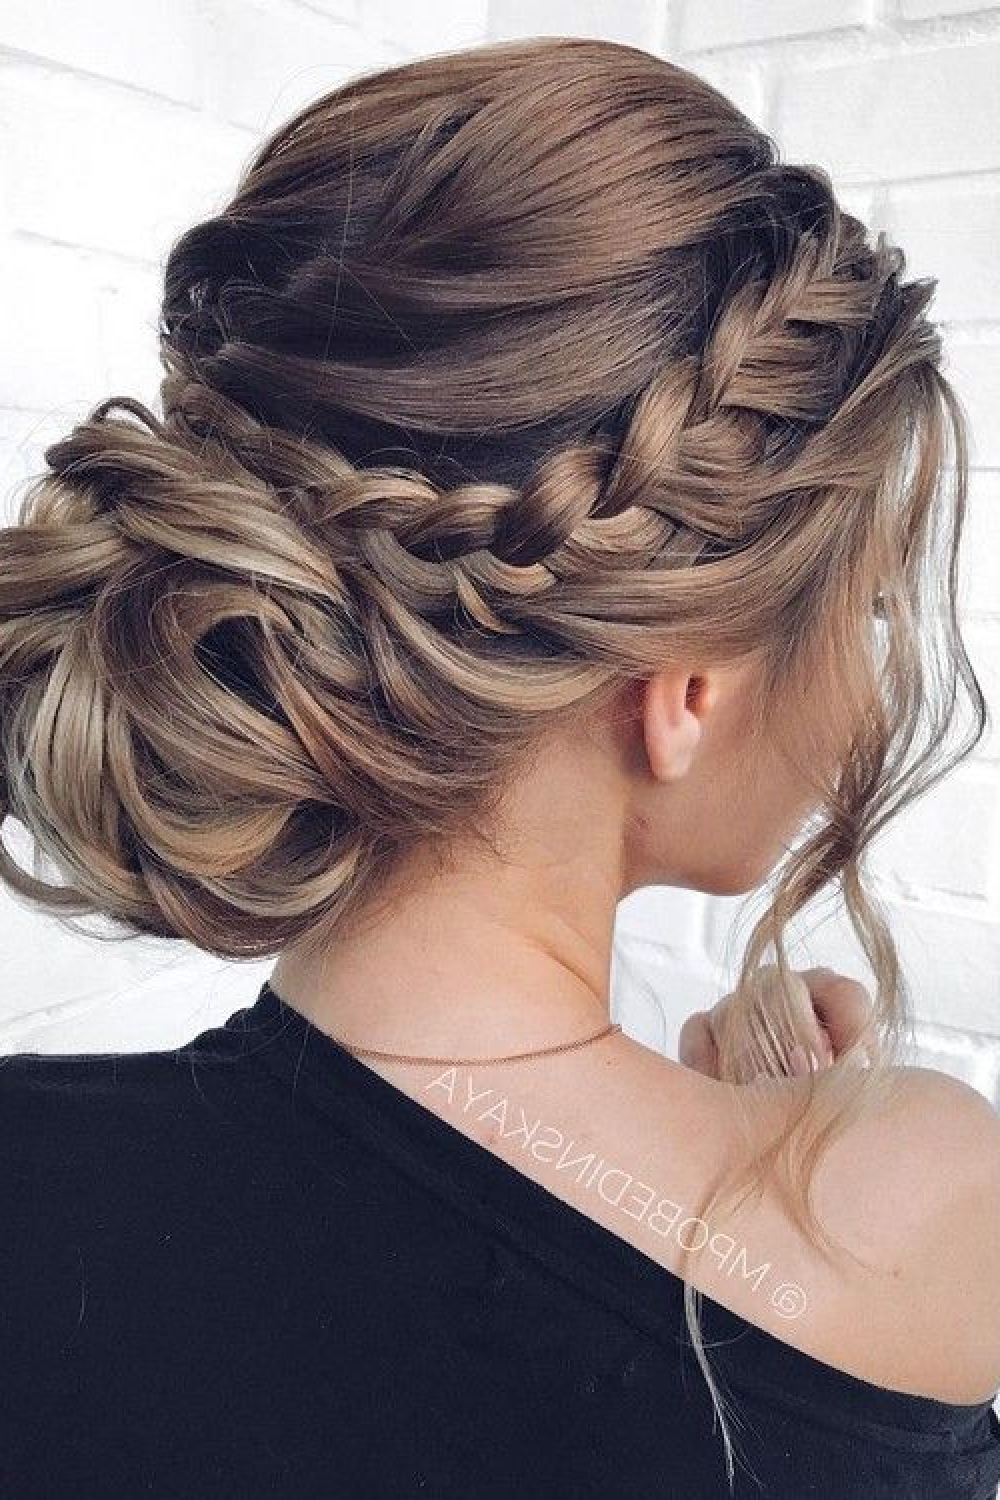 28 Easy Tips For Prom Hair Ideas For You Prom Hair Up Mother Of The Bride Hair Prom Hairstyles For Long Hair